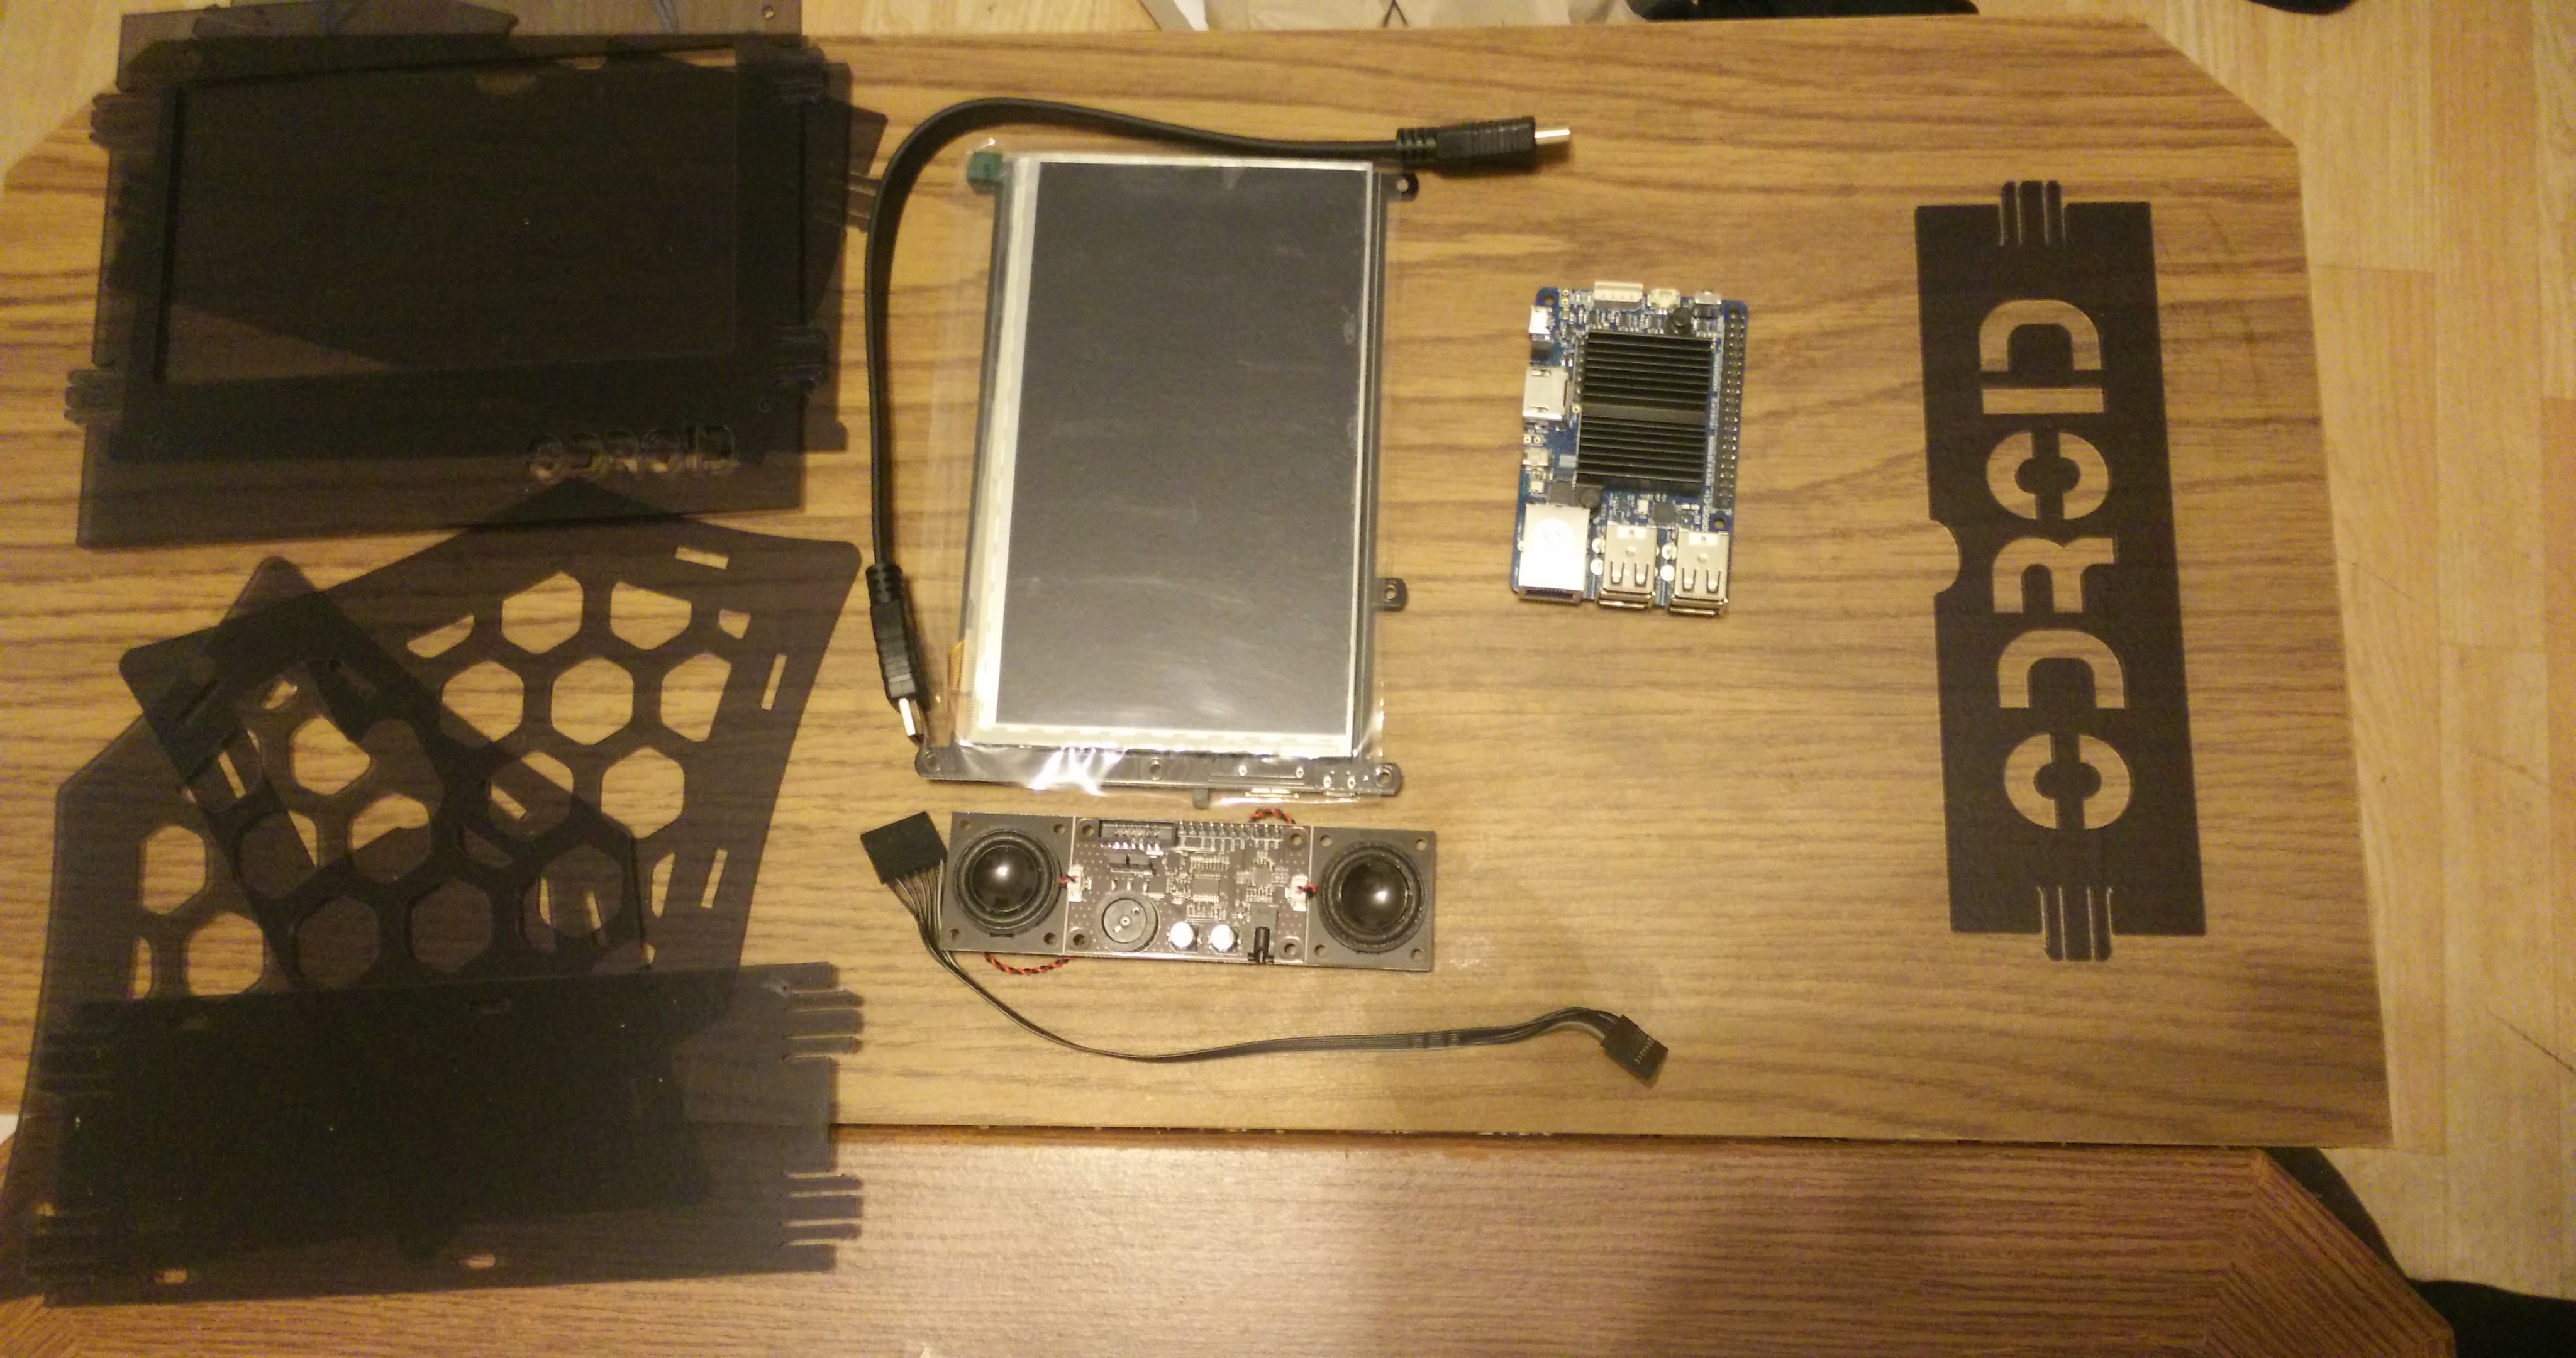 ODROID Magazine Figure 1 - The main components for the project laid out together ready for assembling